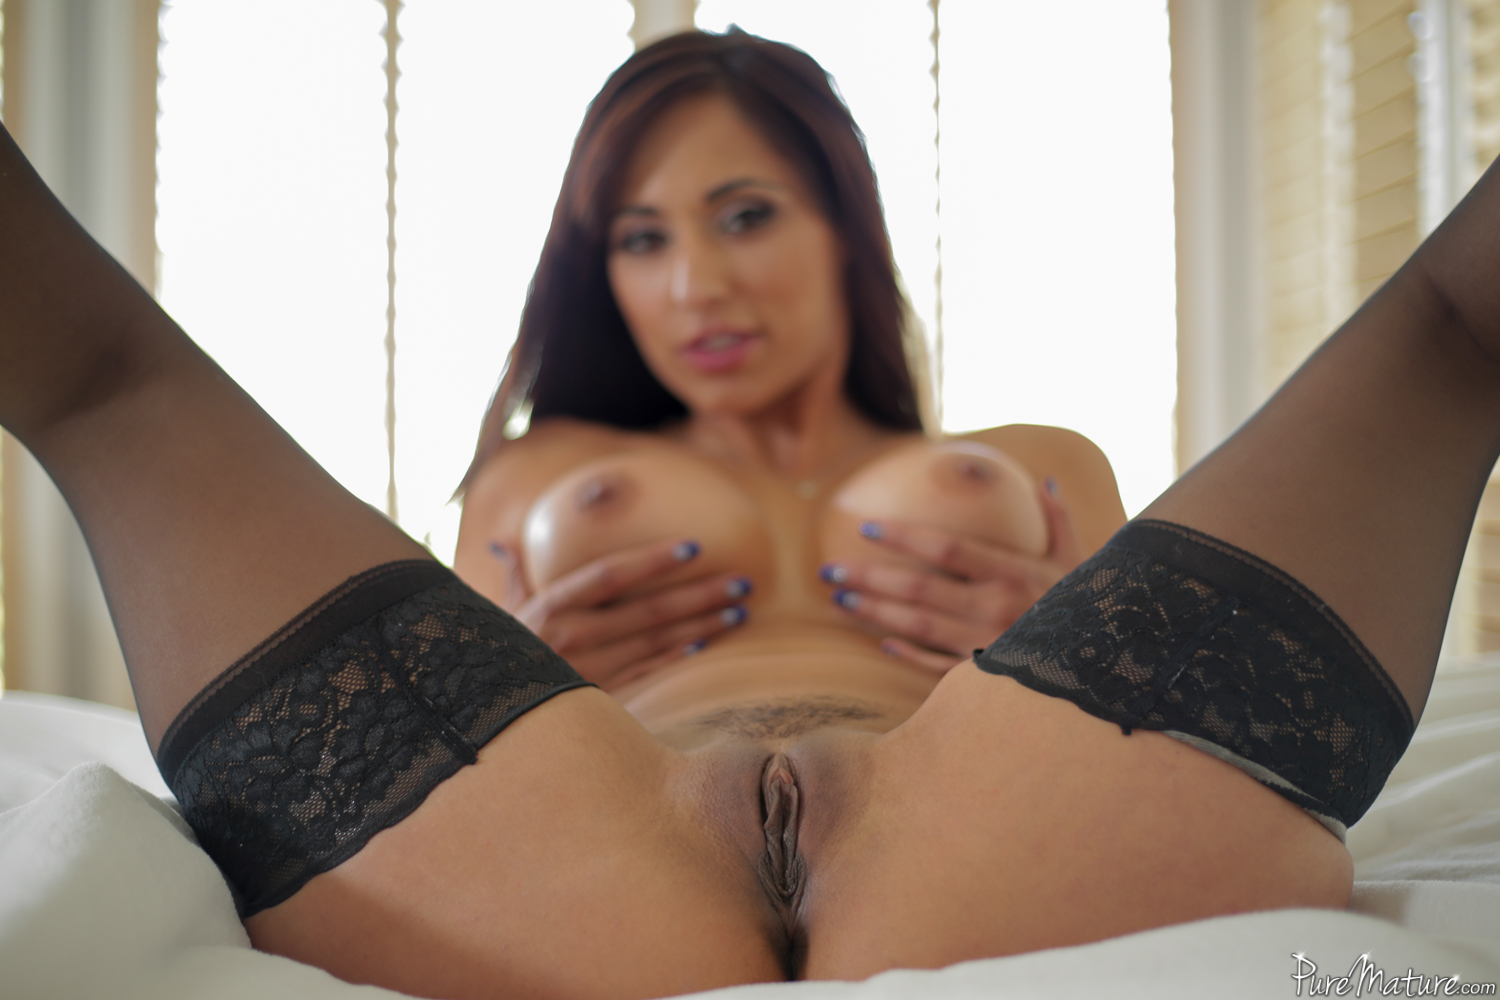 Alana luv is a hot new york milf